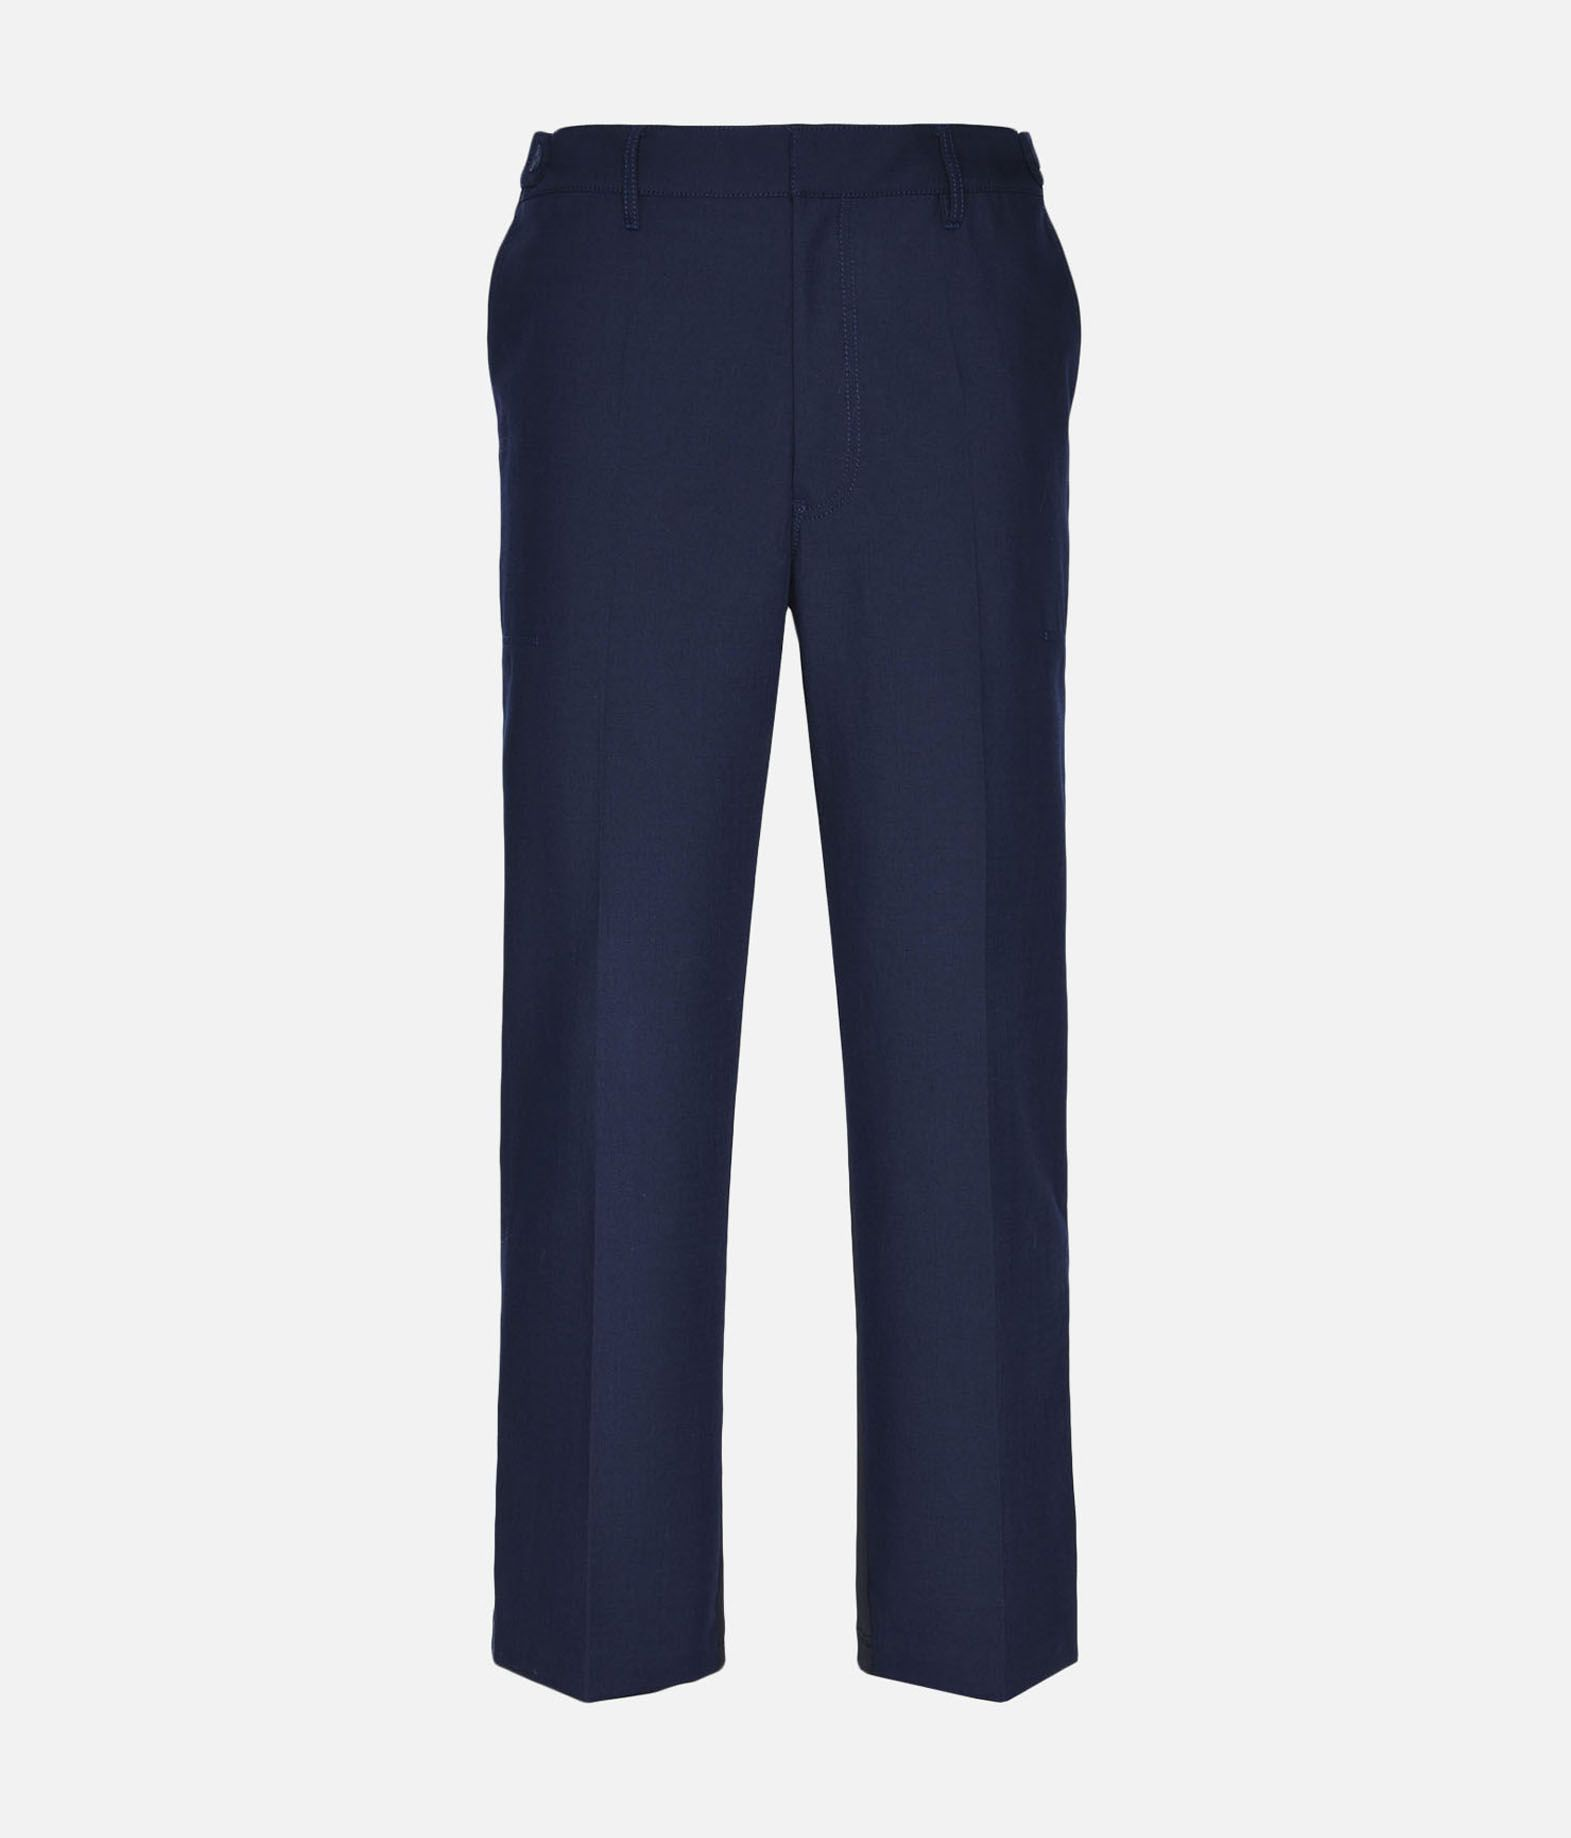 Y-3 Y-3 Dress Pants Pantalon Homme f